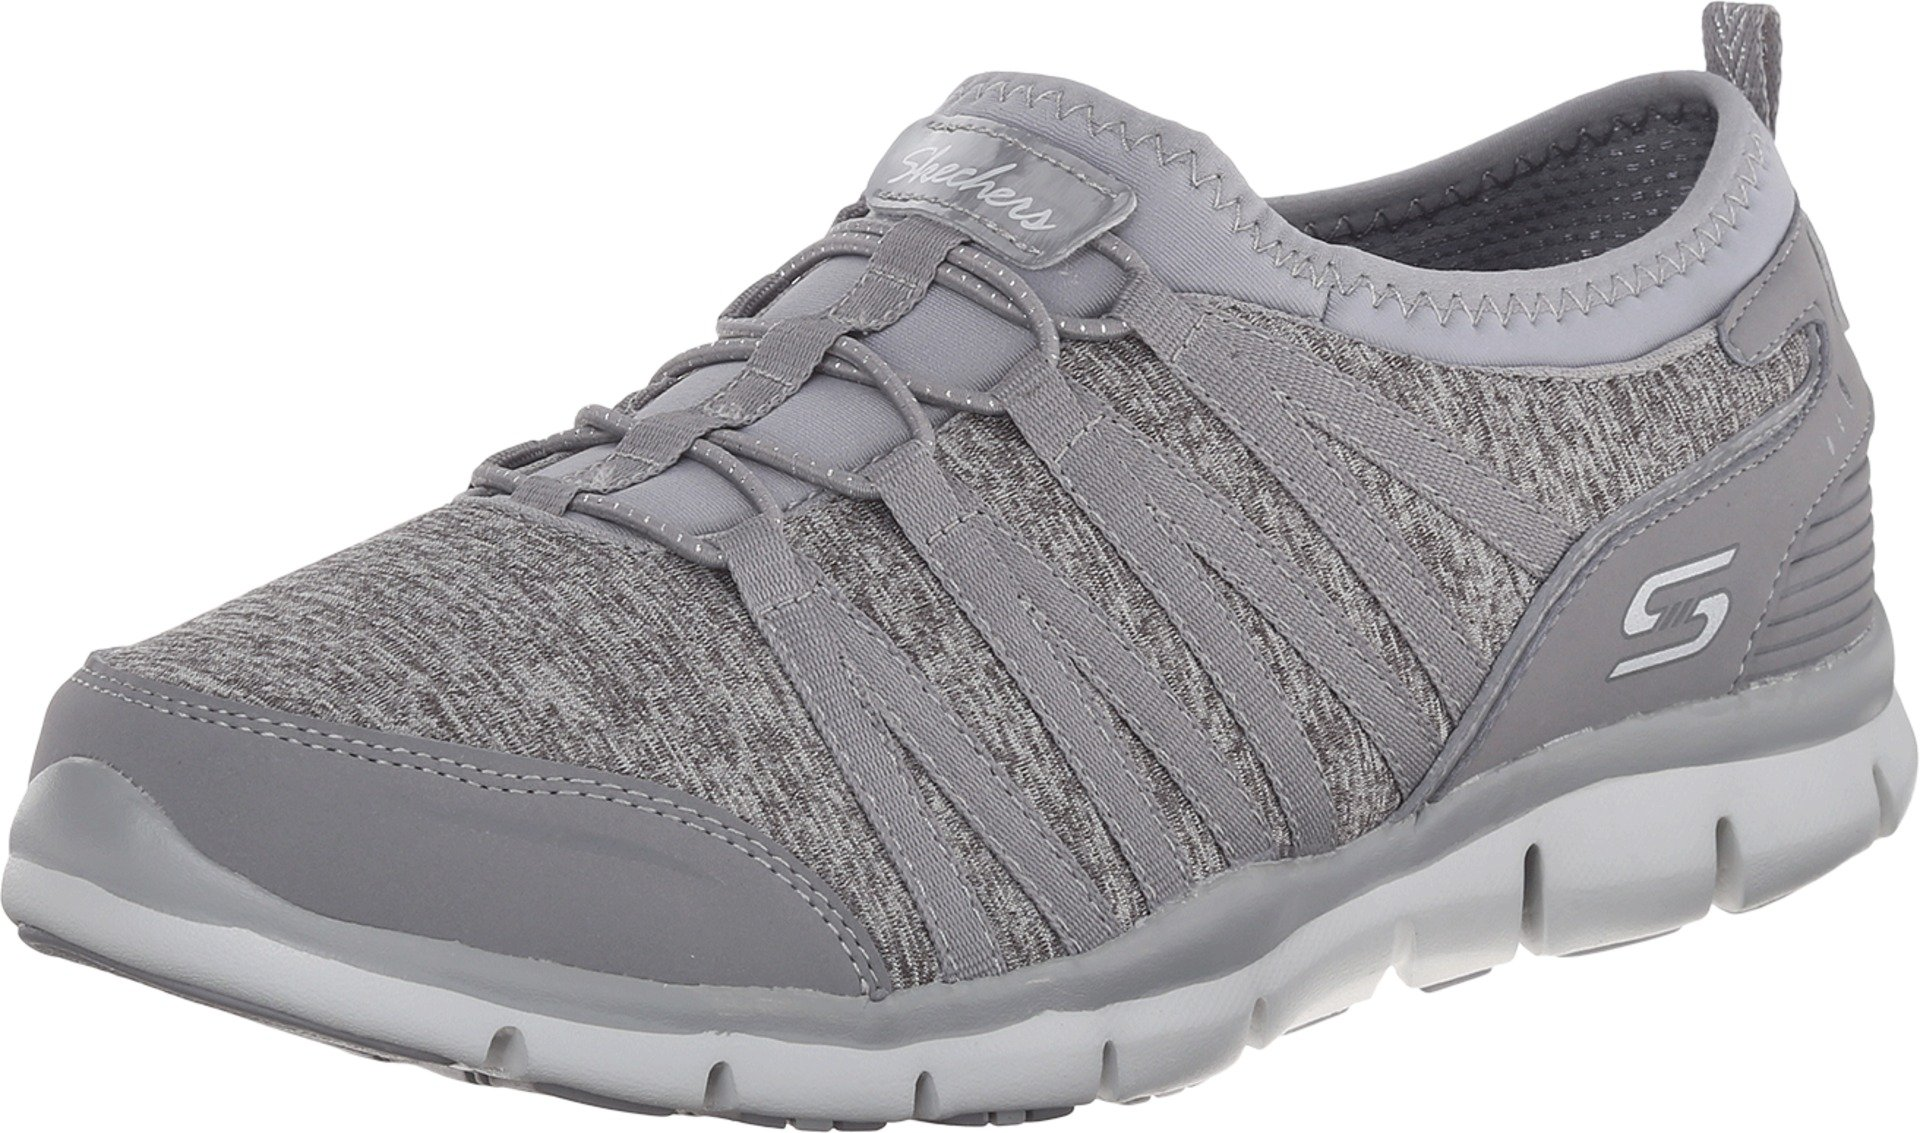 Skechers Women's Gratis Shake It Off Slip-On Sneaker Grey 9 M